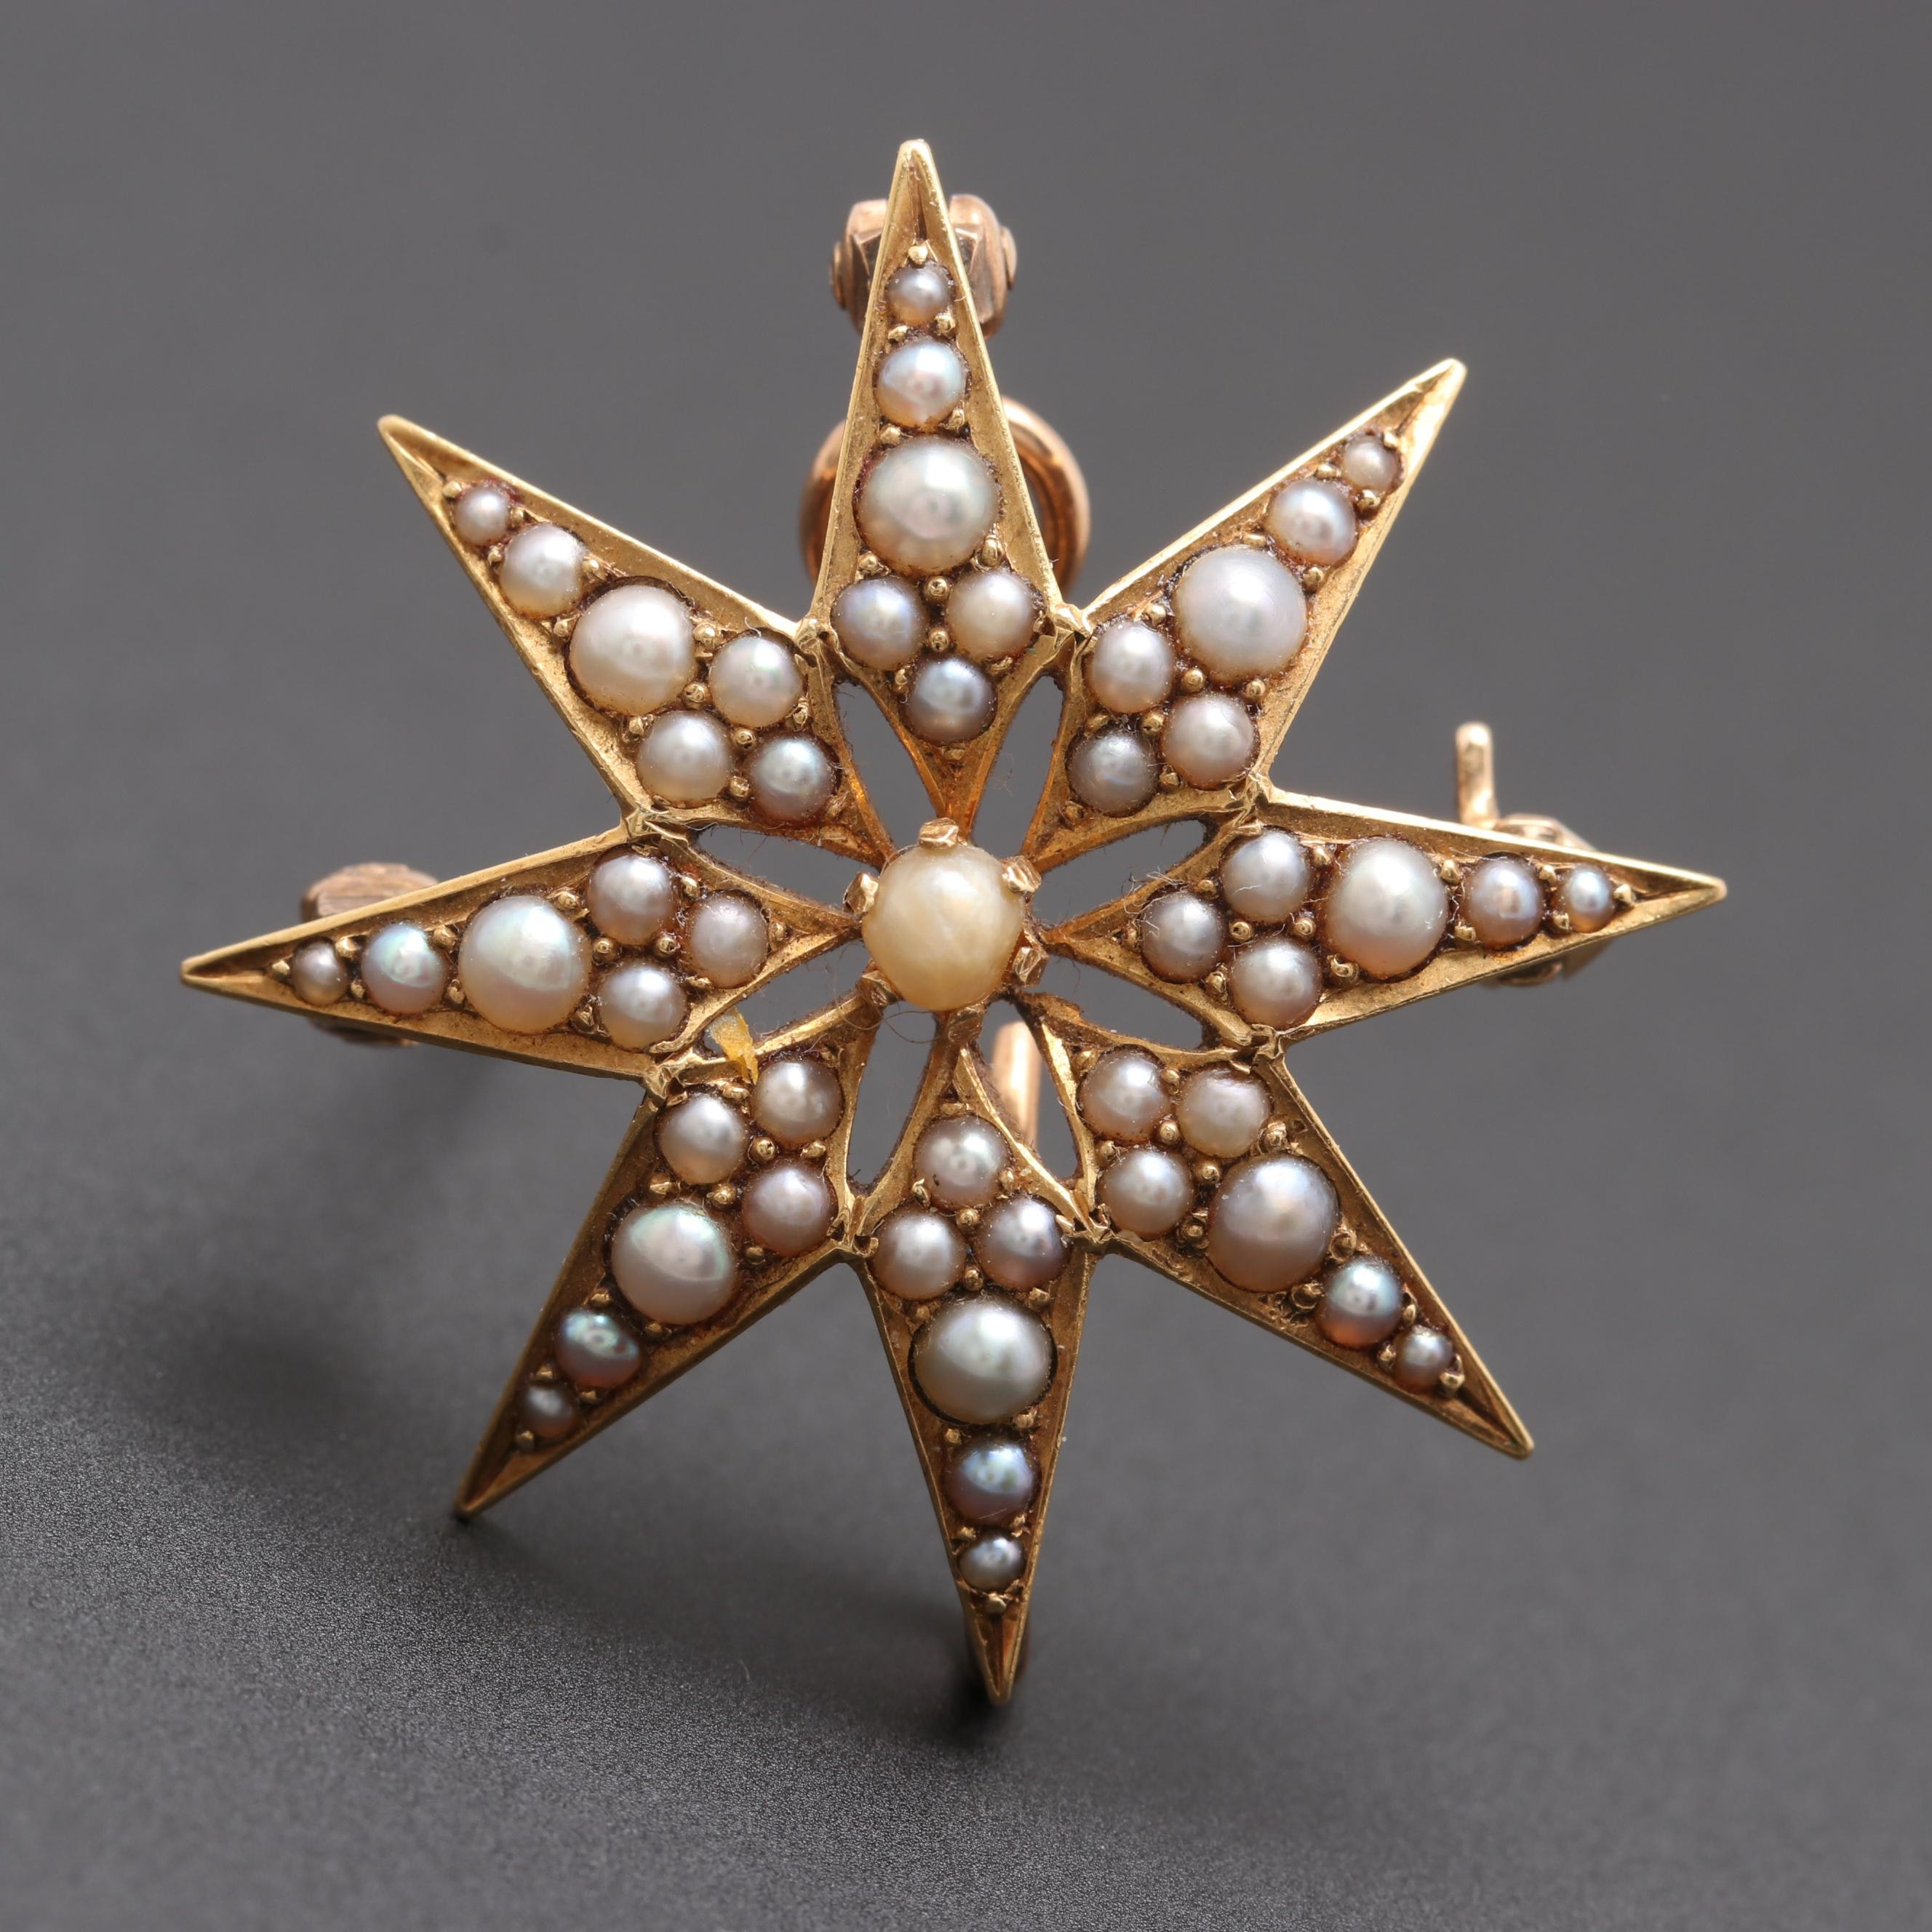 Art Nouveau 14K Yellow Gold Seed and Half Pearl Star Converter Brooch